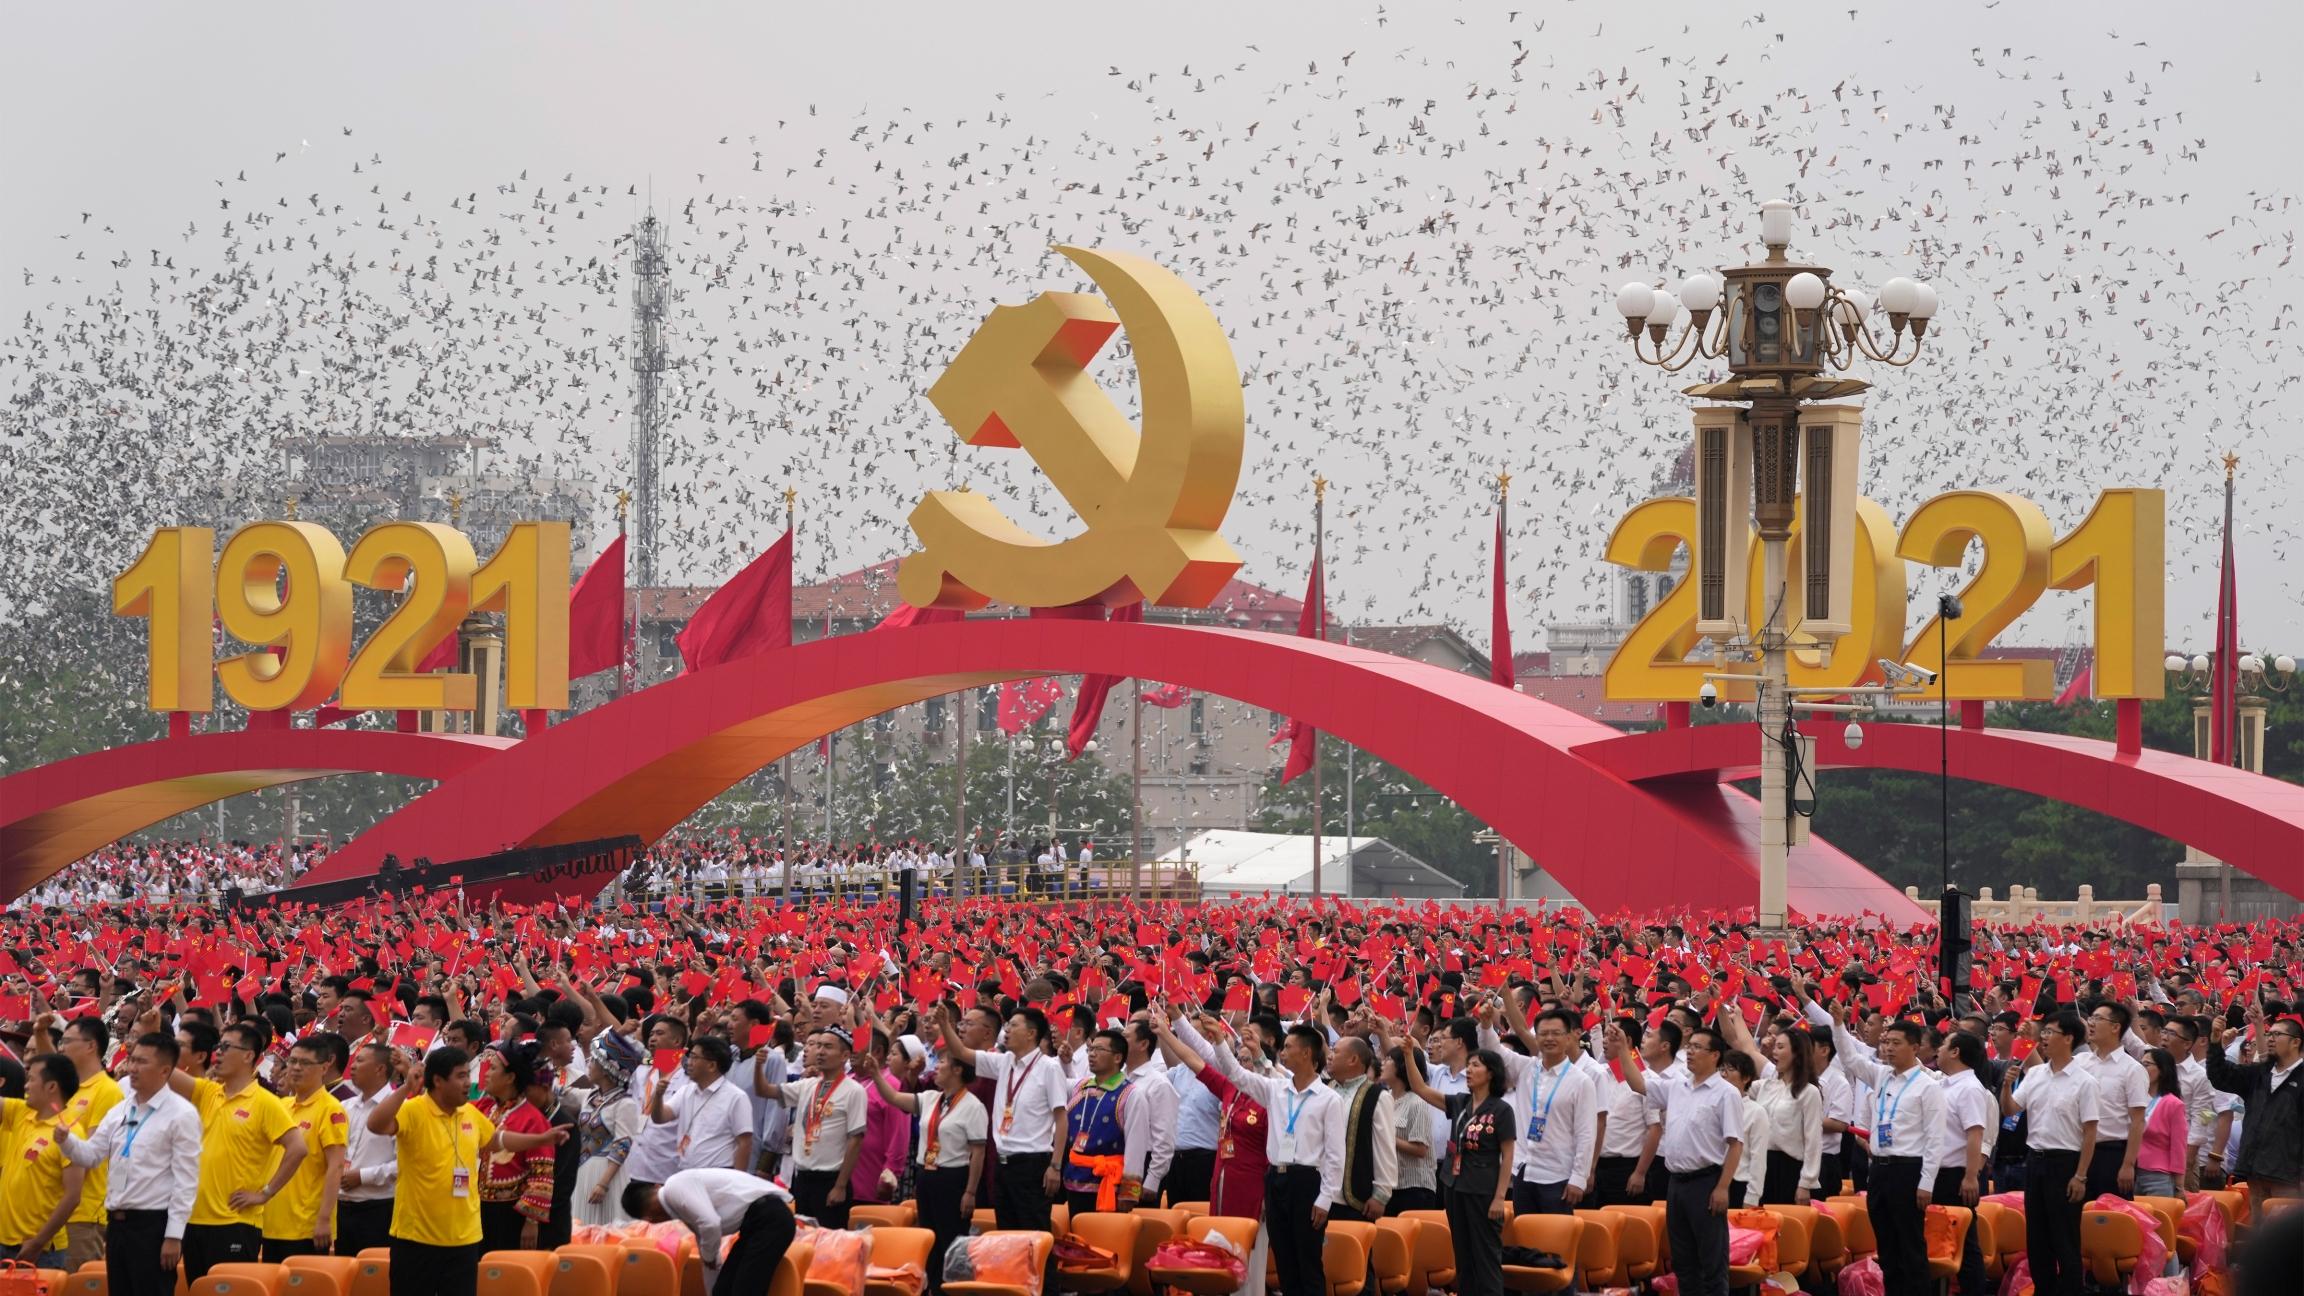 Attendees wave Chinese flags during a ceremony at Tiananmen Square to mark the 100th anniversary of the founding of the ruling Chinese Communist Party in Beijing